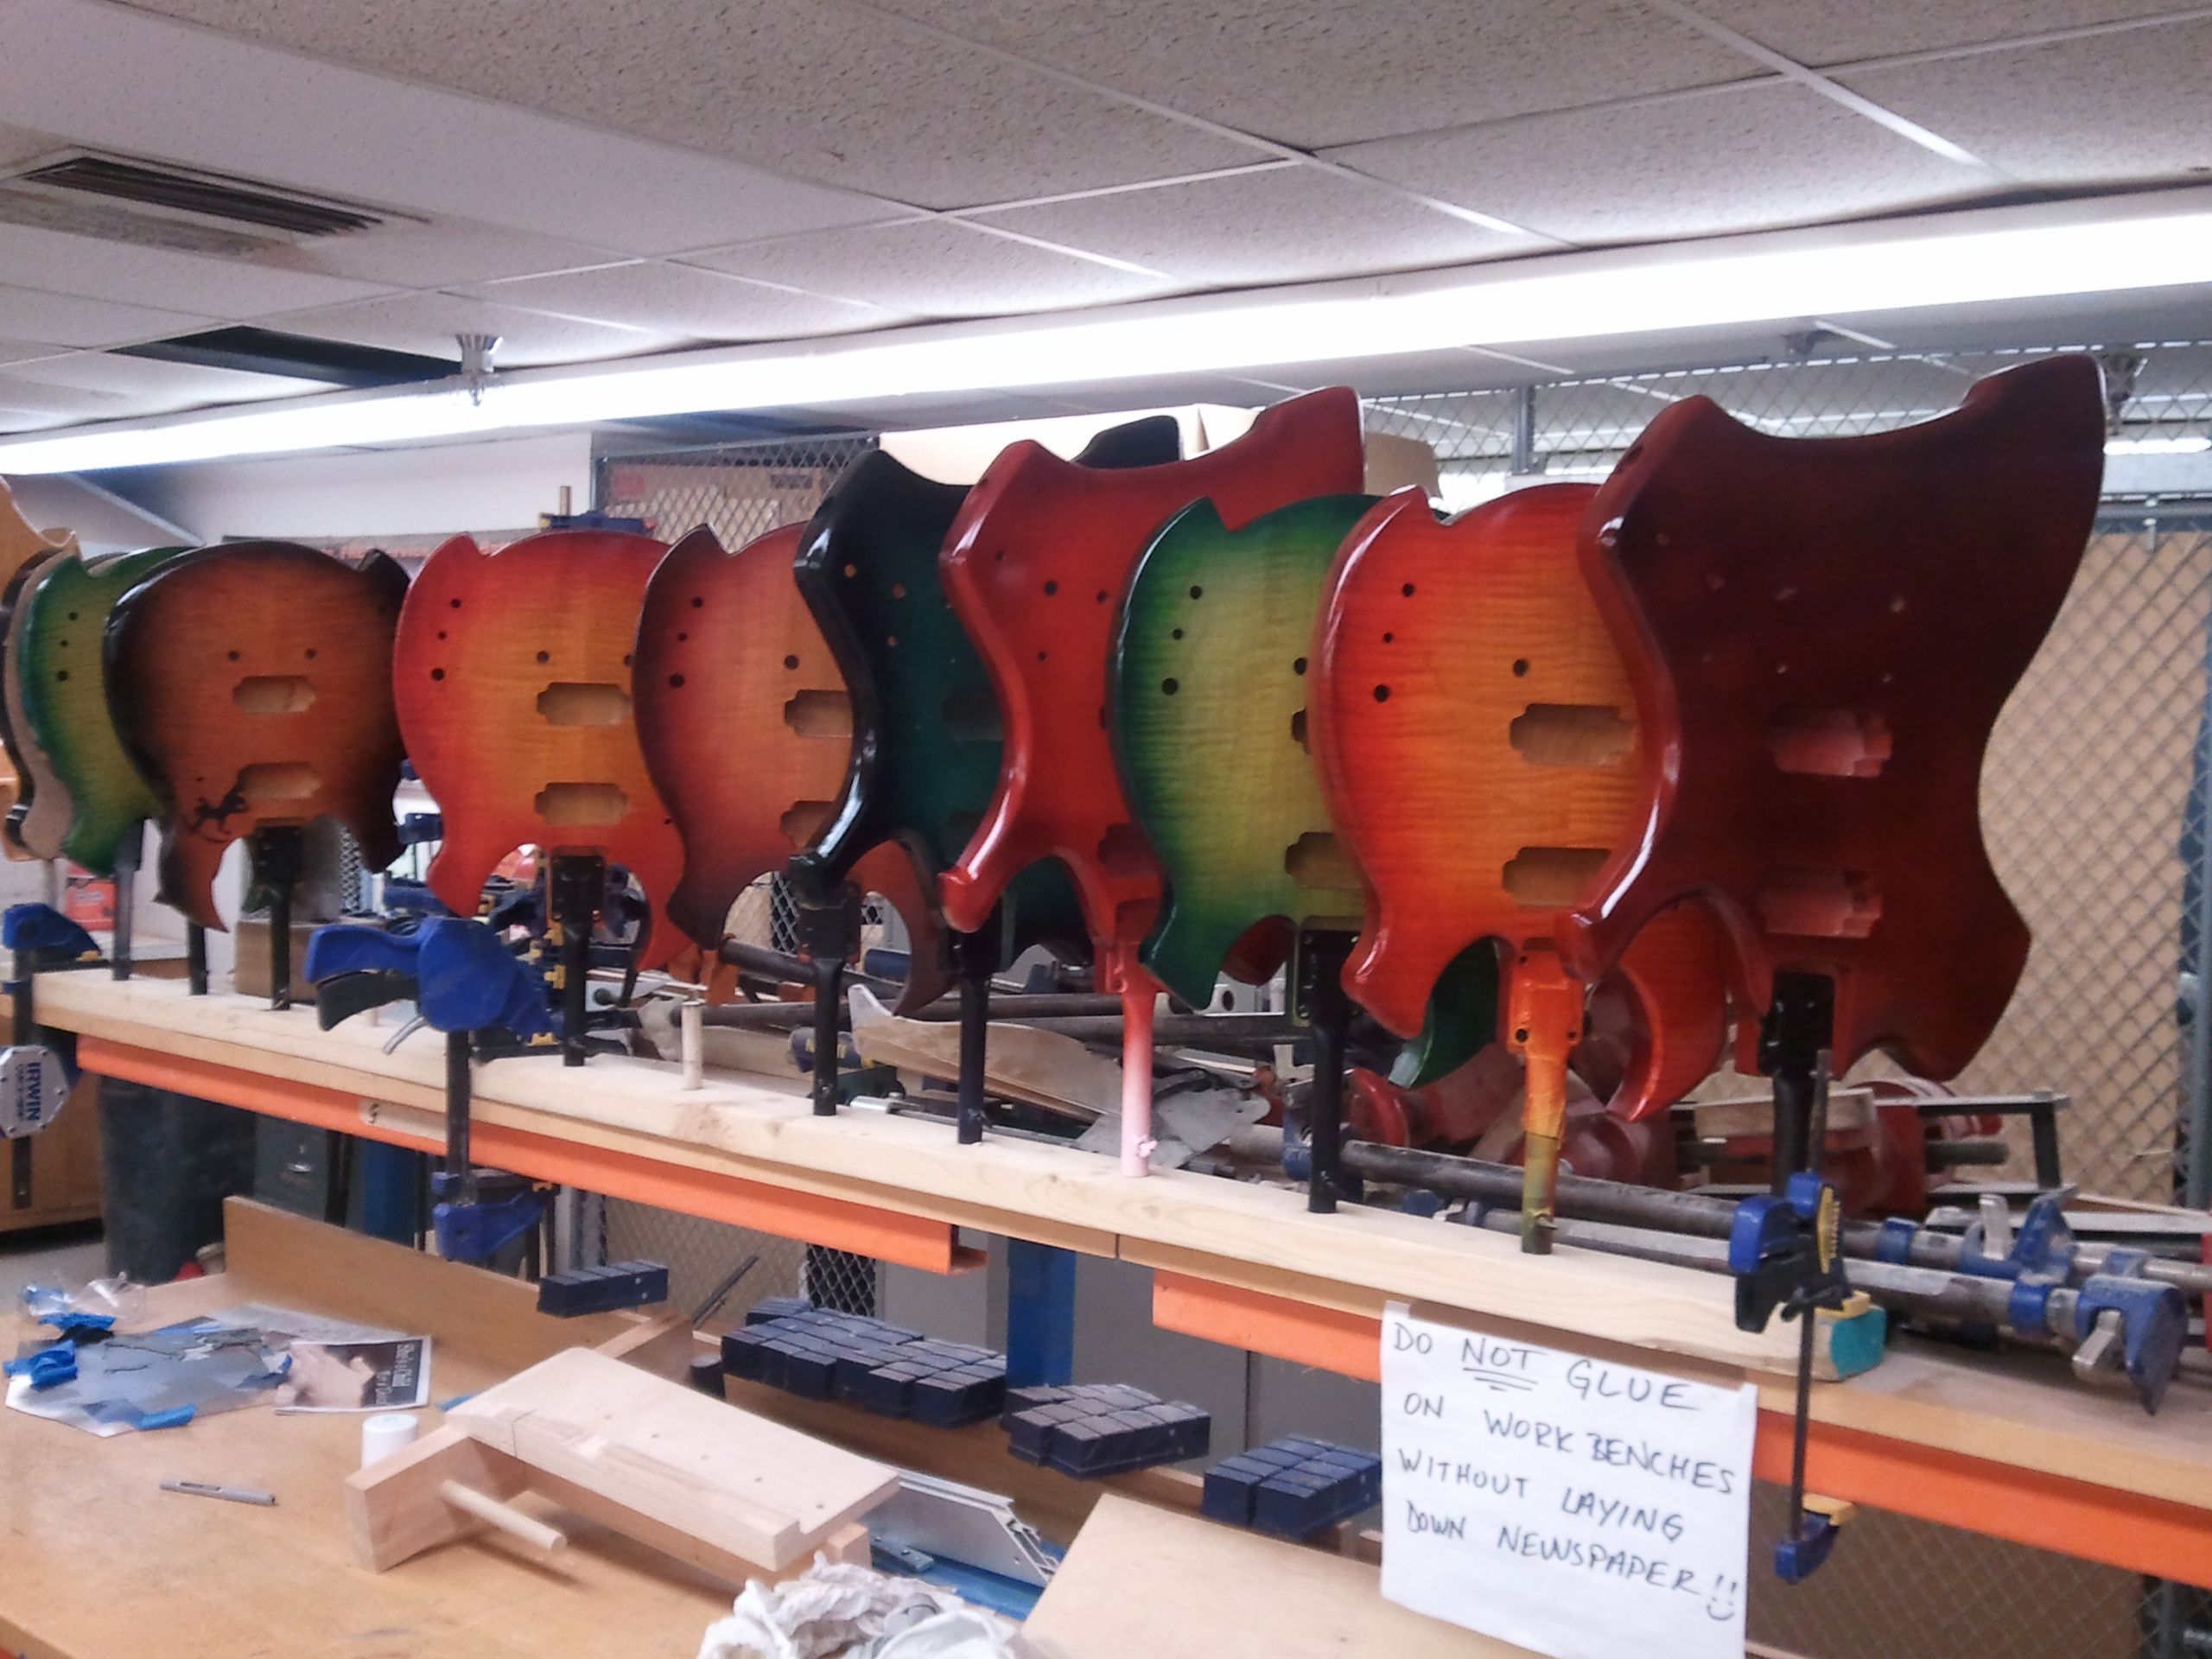 A herd of painted guitar bo s